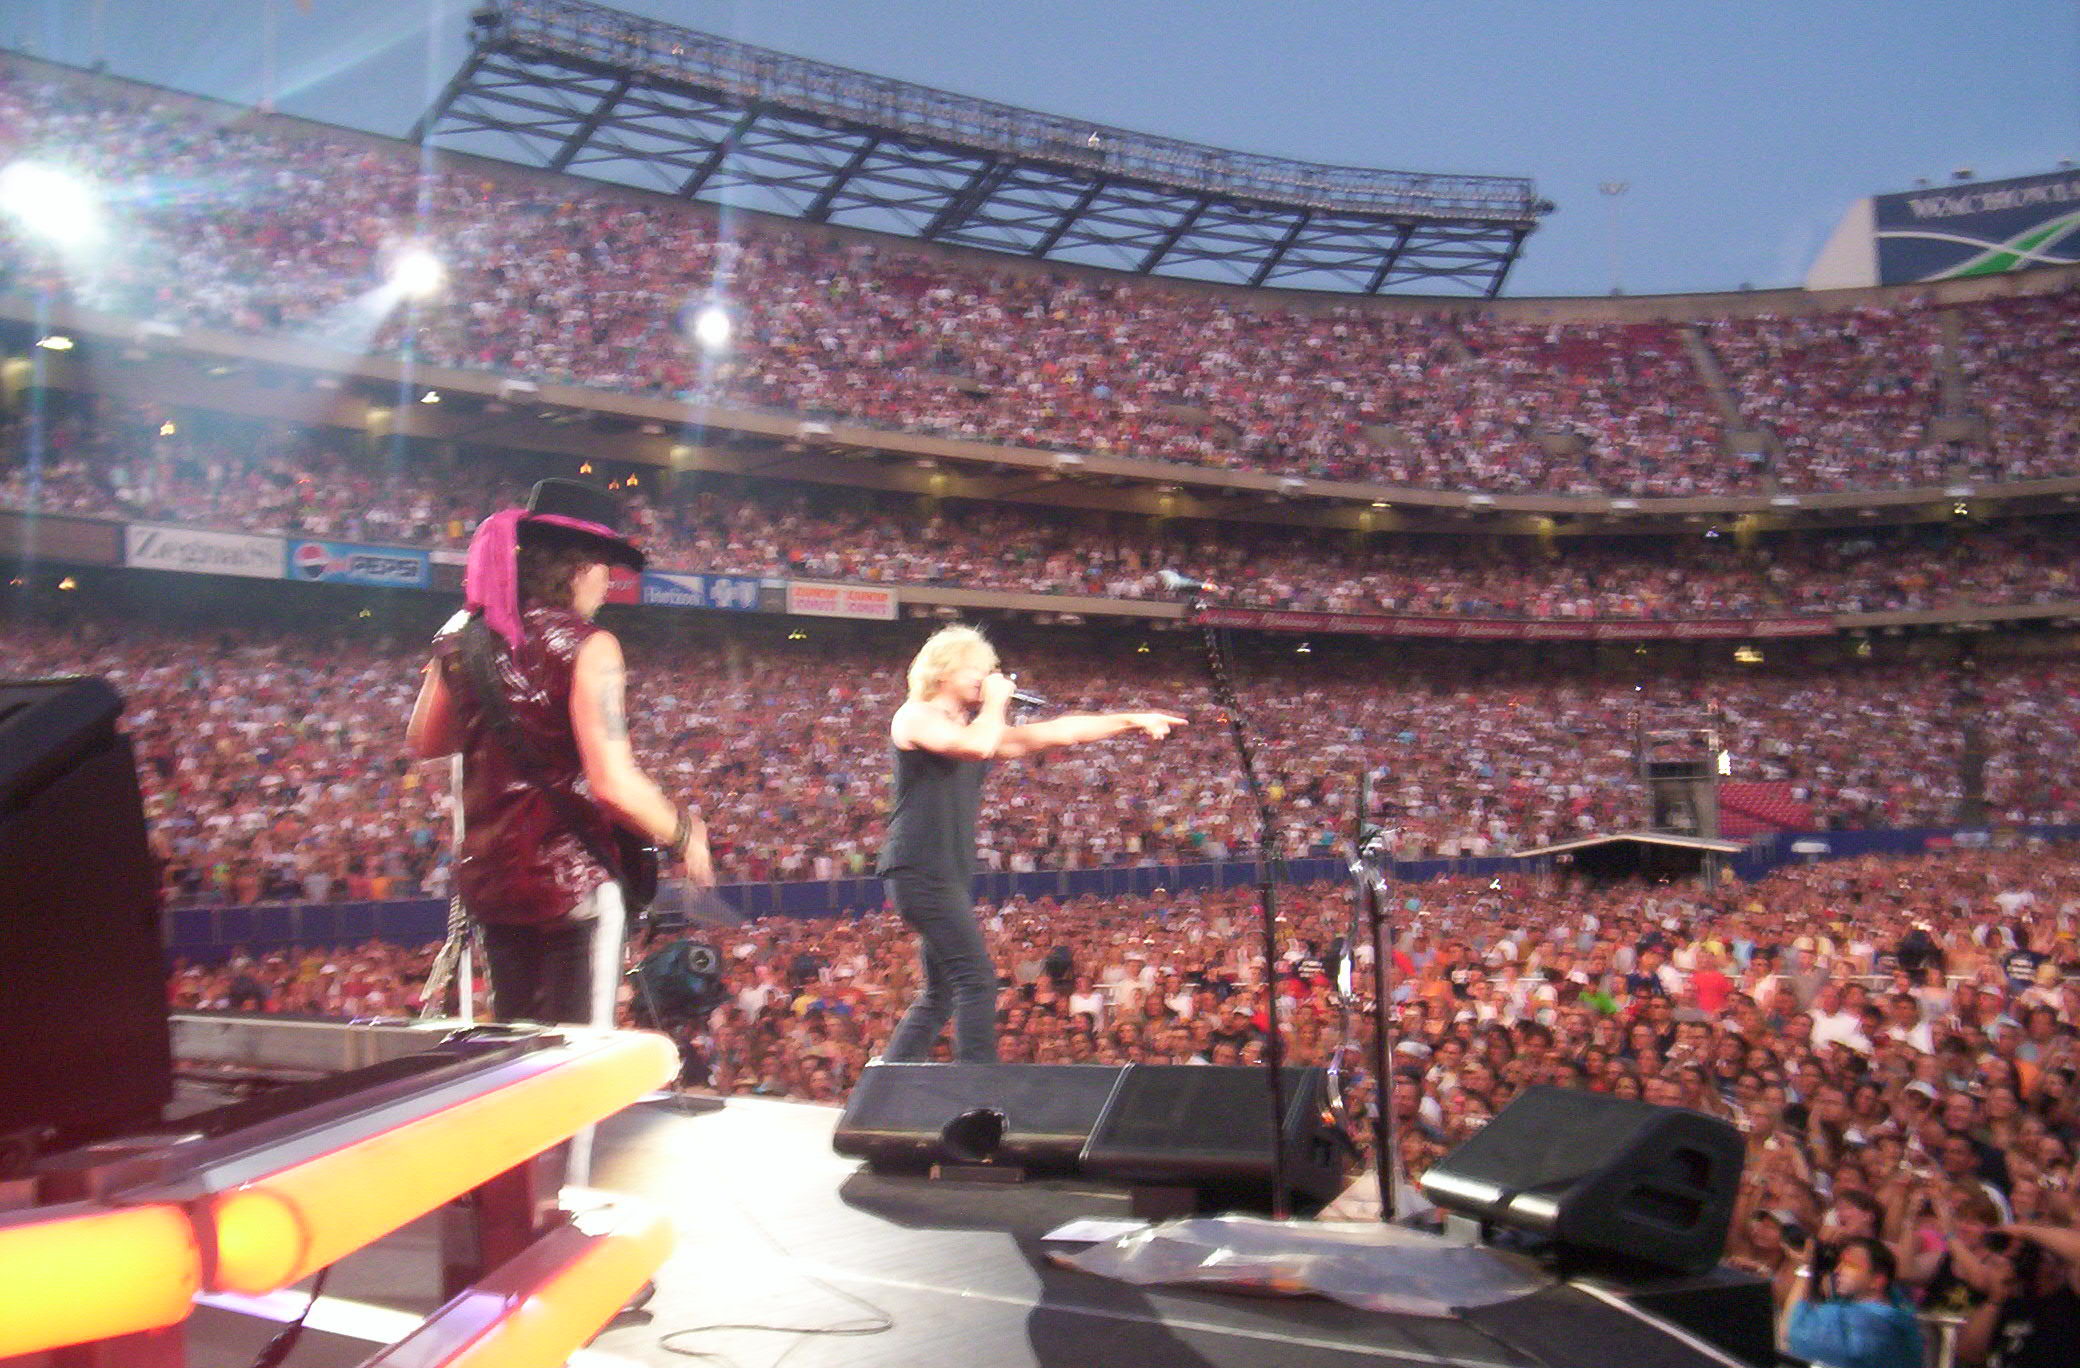 Things unlikely to happen elsewhere: Being on stage with Bon Jovi at MetLife Stadium